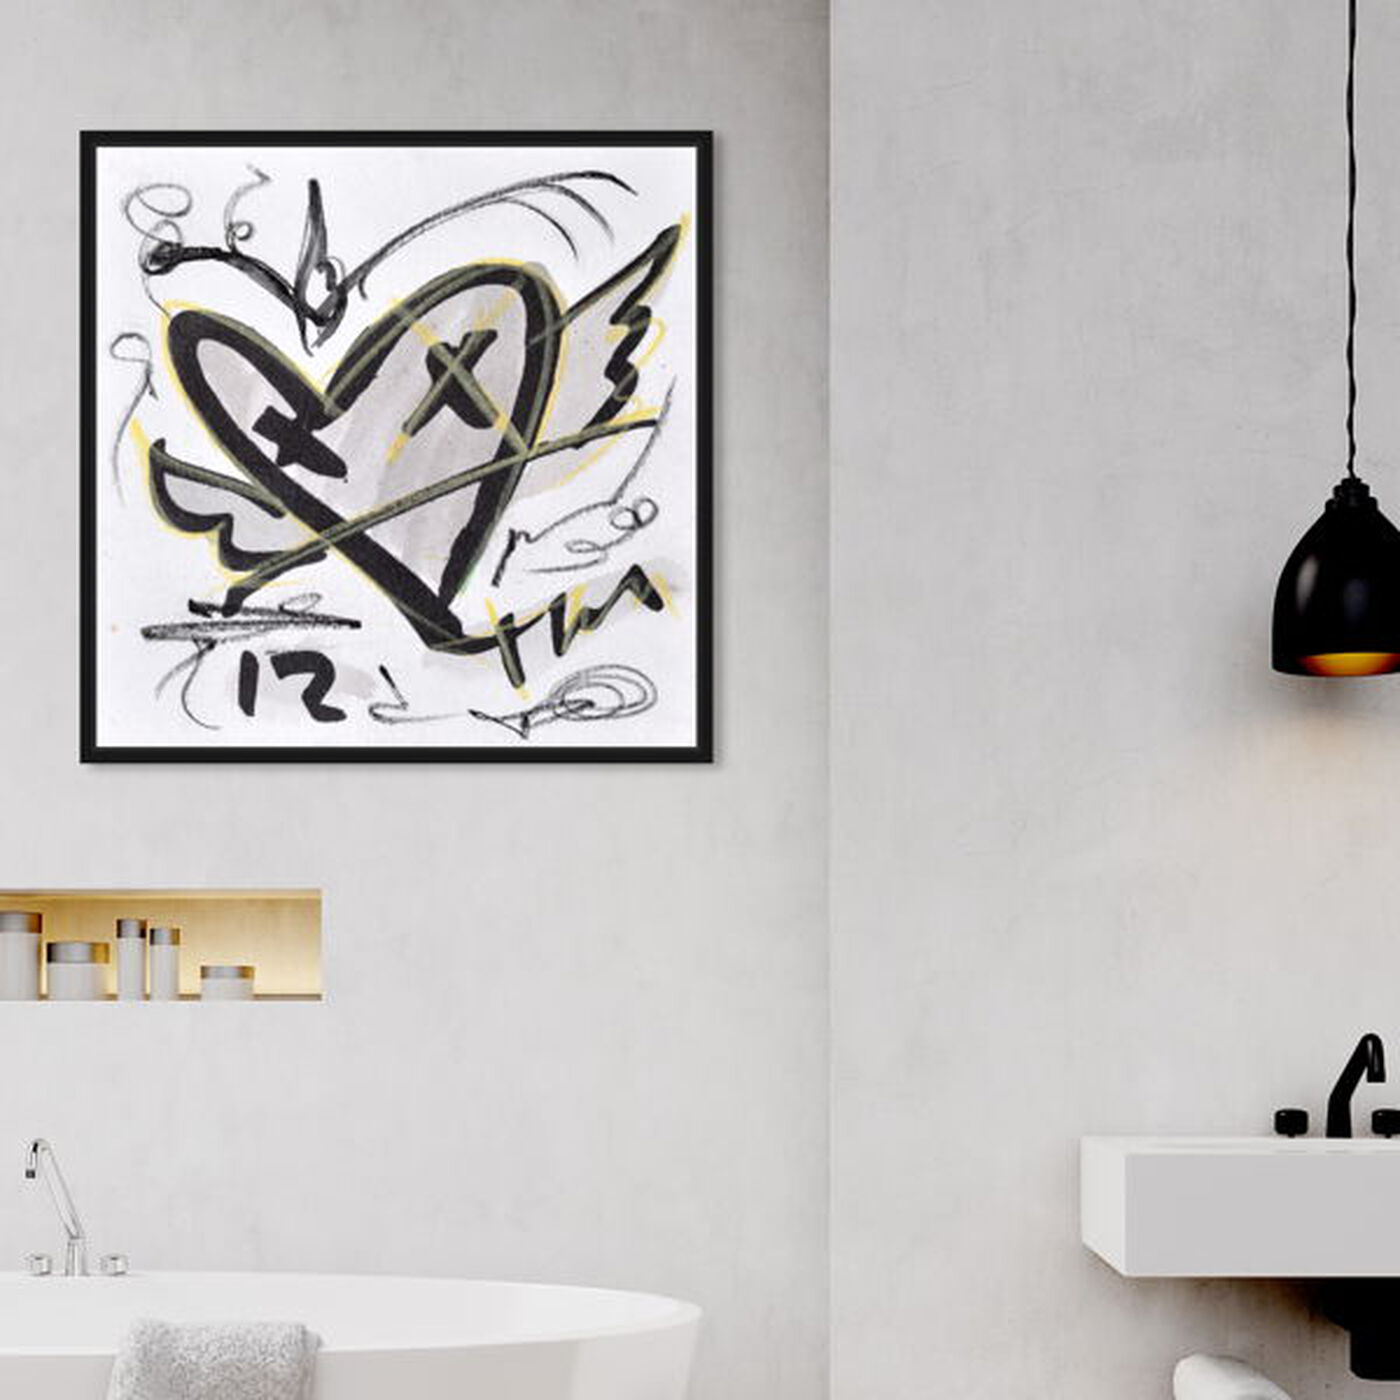 Hanging view of Sketch by Tiago Magro featuring abstract and paint art.